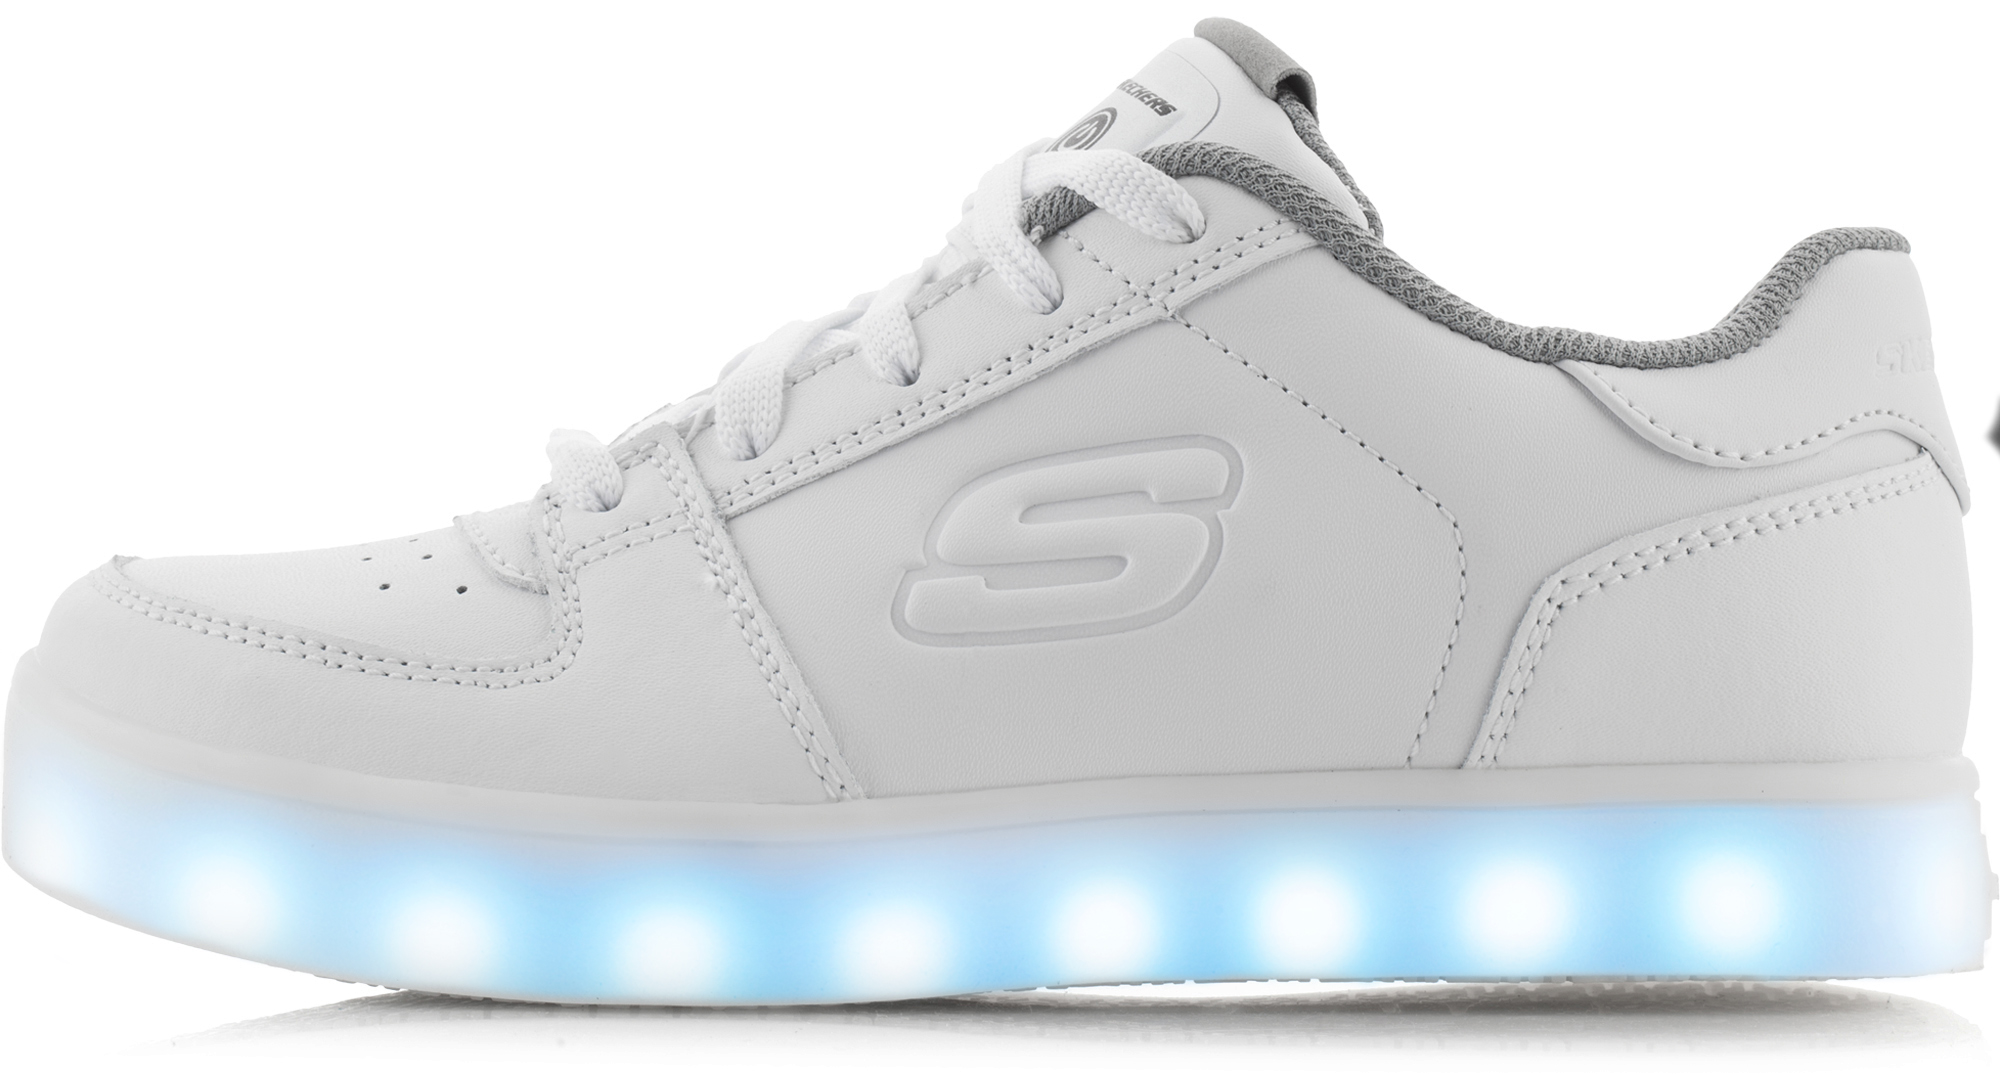 Skechers Кеды детские Skechers Energy Lights-Elate skechers energy light